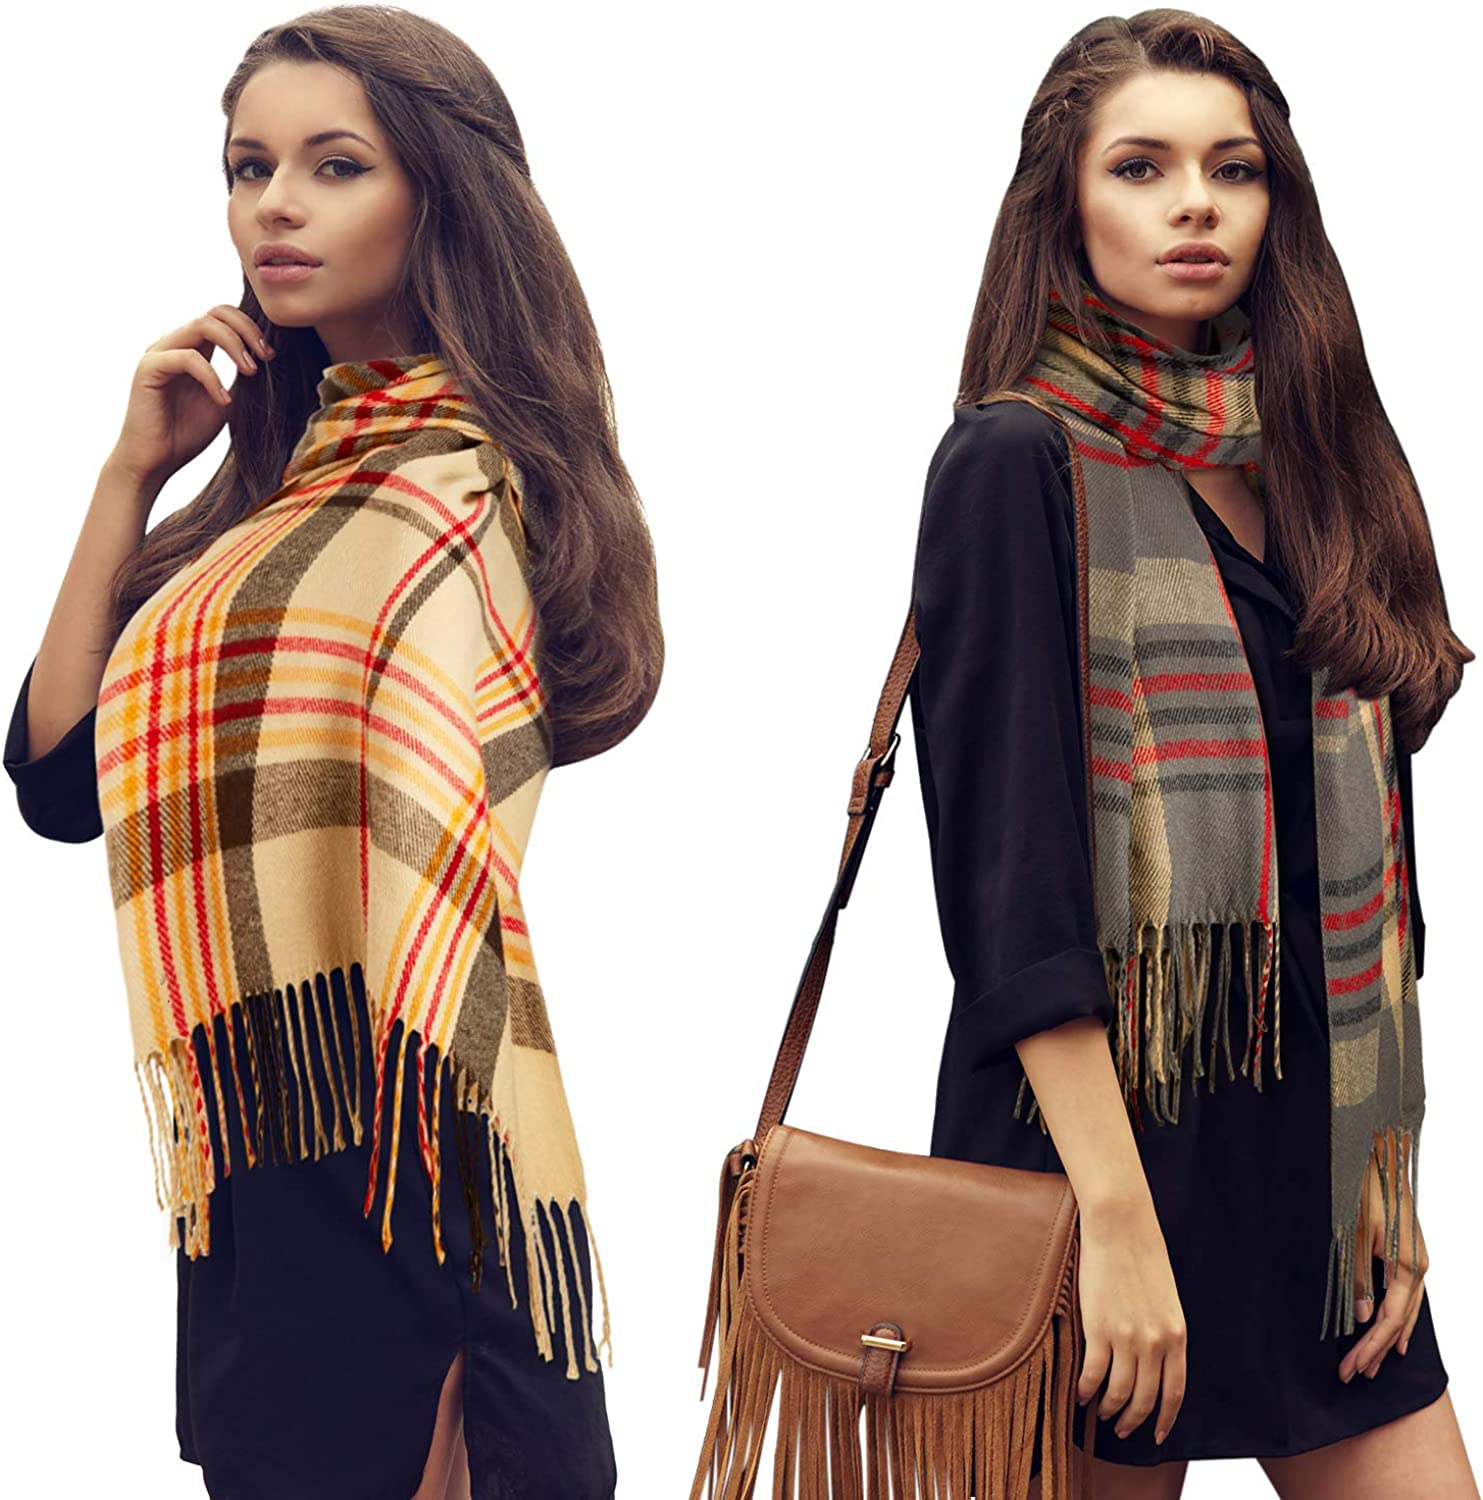 2 Pieces Women Buffalo Atlanta Mall Plaid Scarf with Buttons Max 88% OFF Blanket Oversize